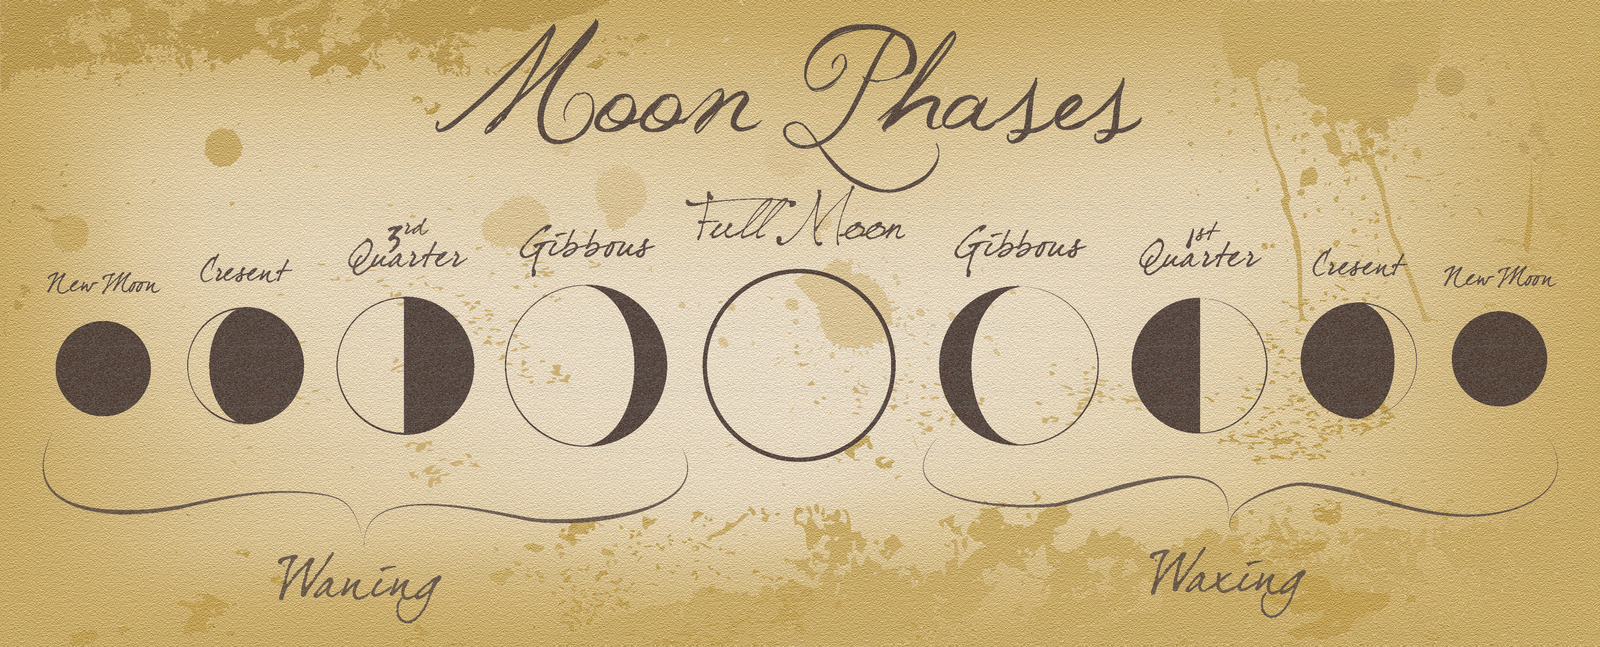 moon_phases_by_izzabell-d3inrqv.png